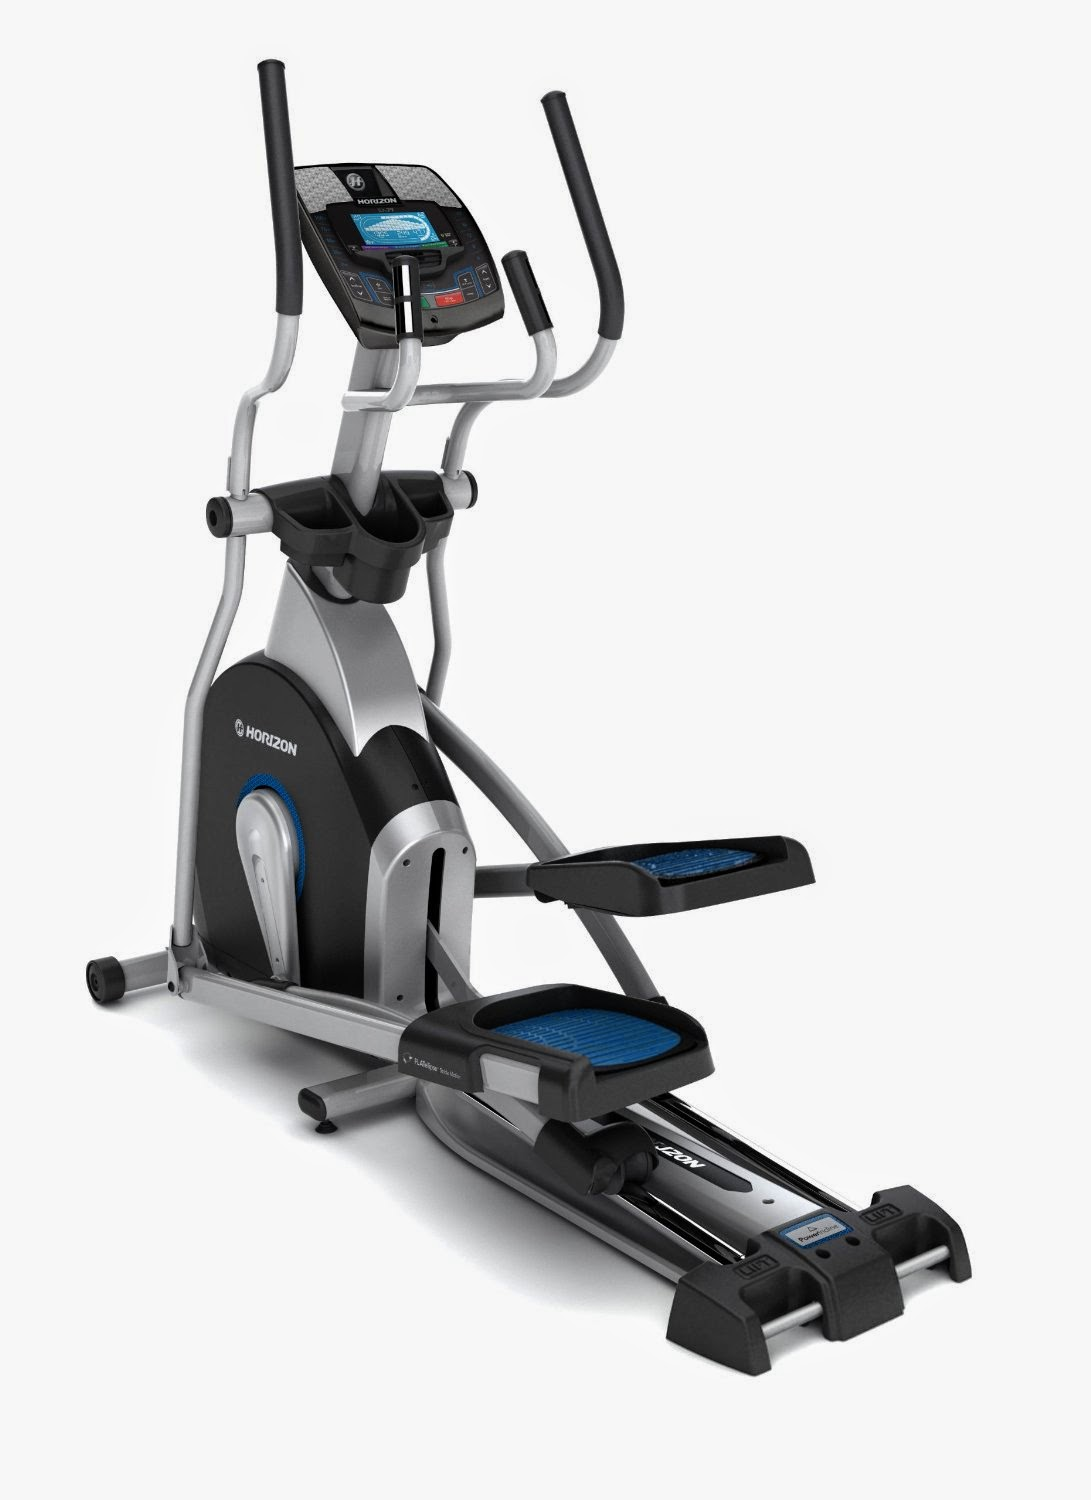 Horizon Fitness EX 79 2 Elliptical Trainer, compared with EX 69 2, see differences